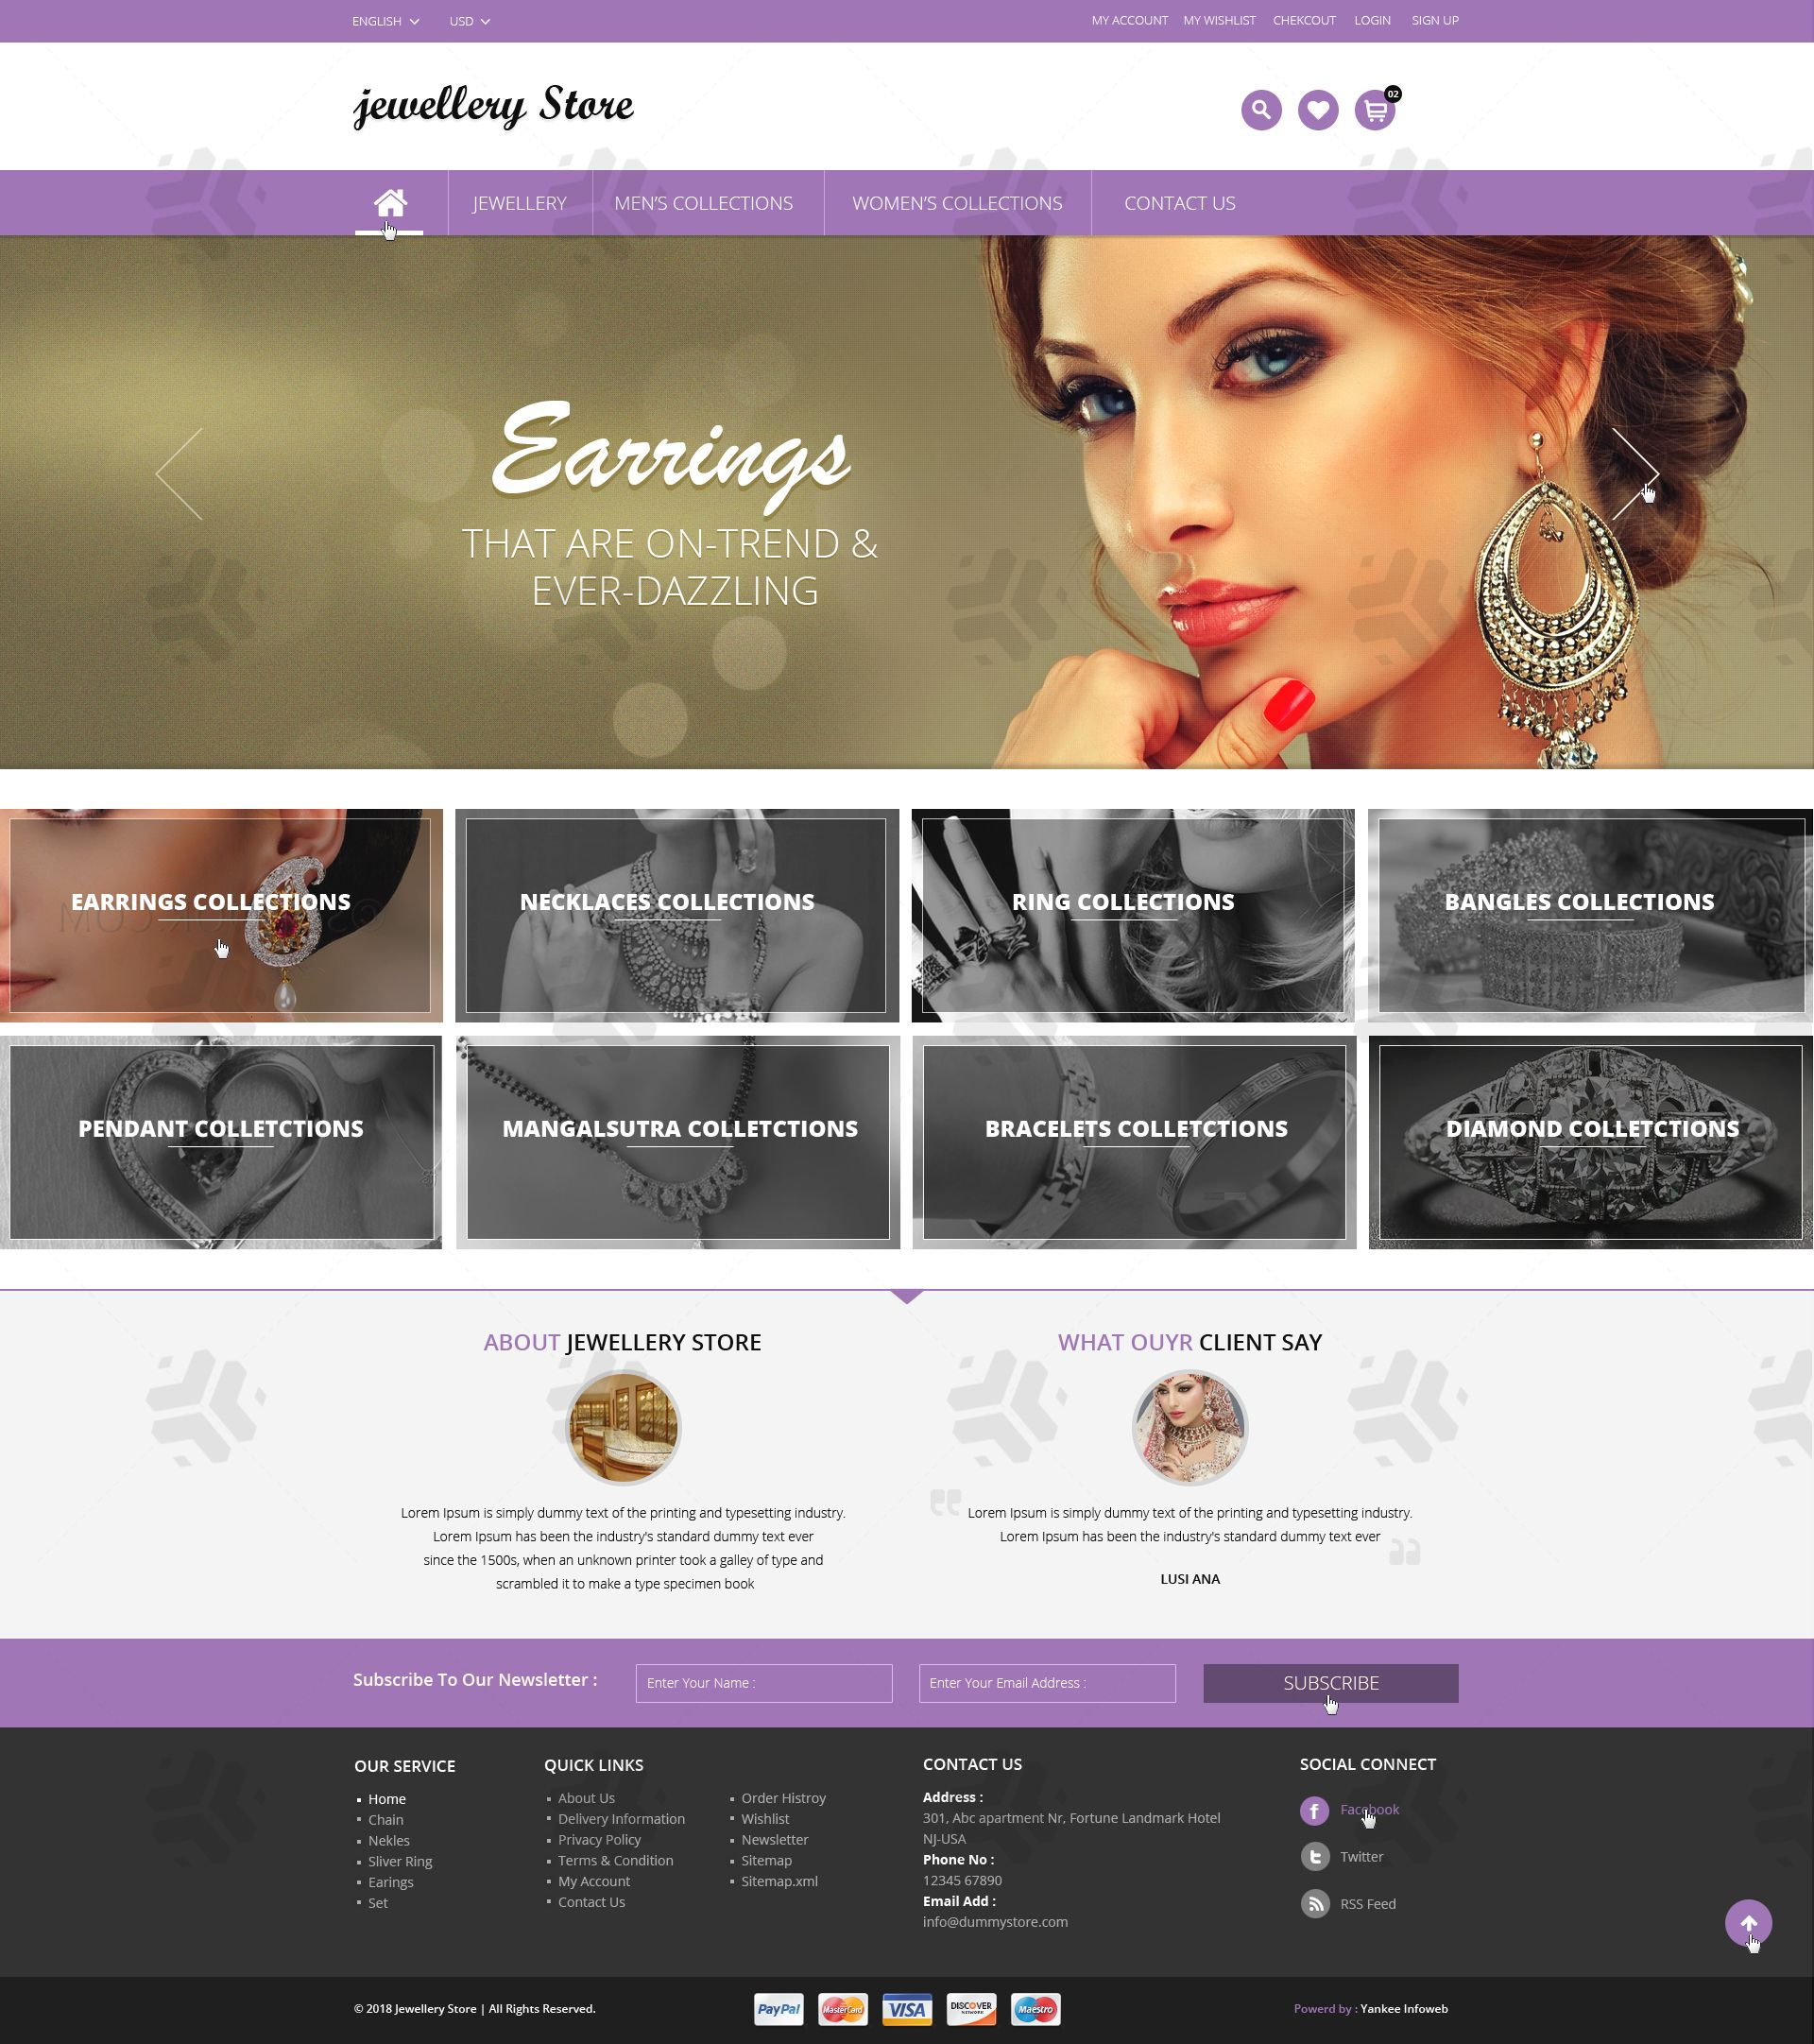 Jewellery Store Landing Page PSD Design !! Features: - 1170